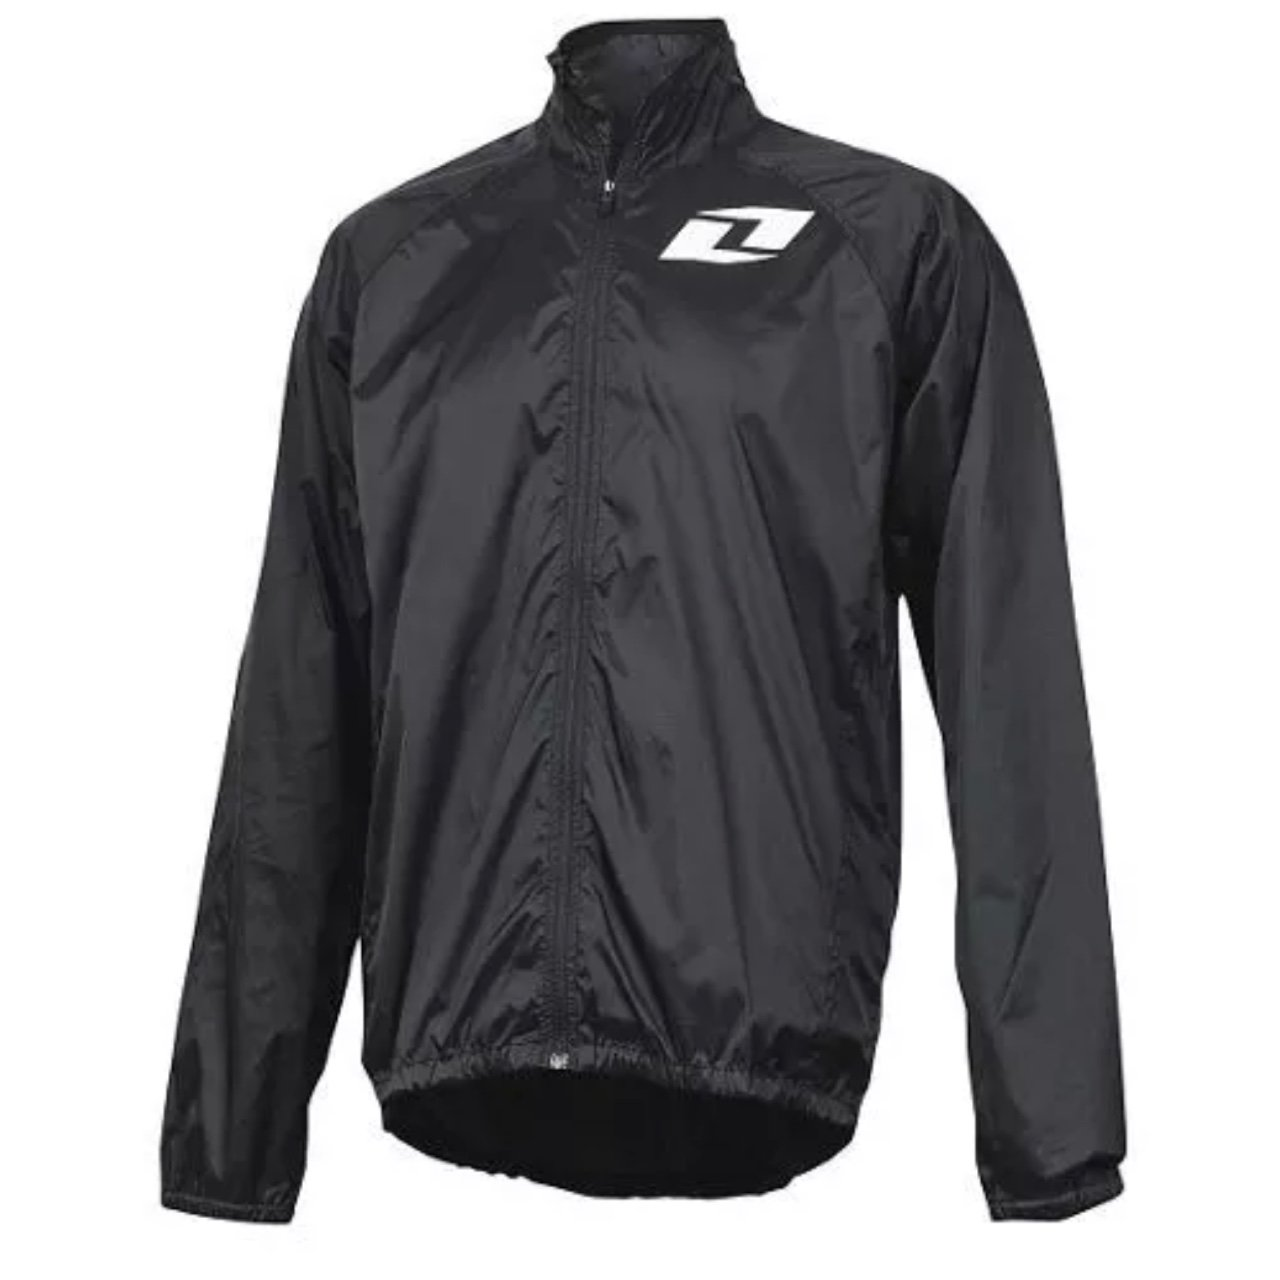 08c0486fa0 💥One Industries Atom jacket💥 Size M Excellent